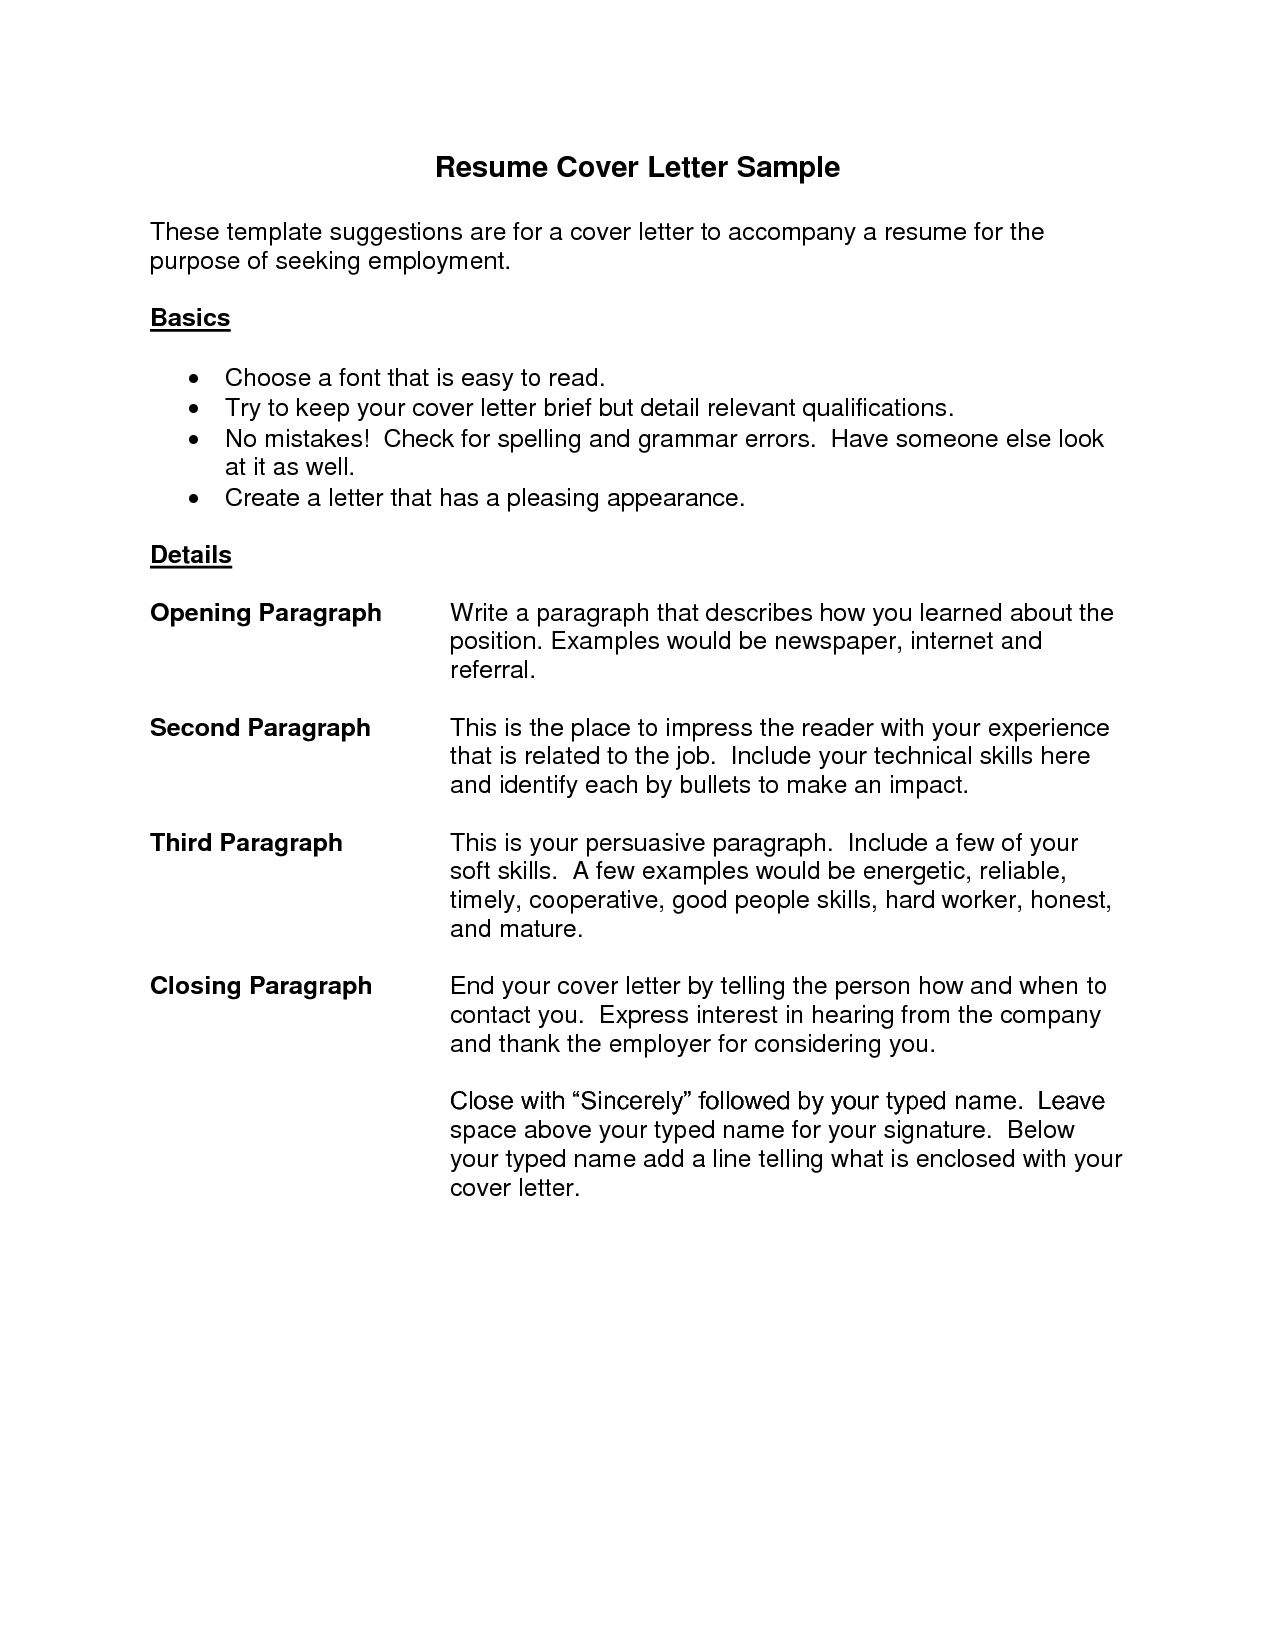 cover letter resume best templatesimple cover letter application letter sample - Sample It Resume